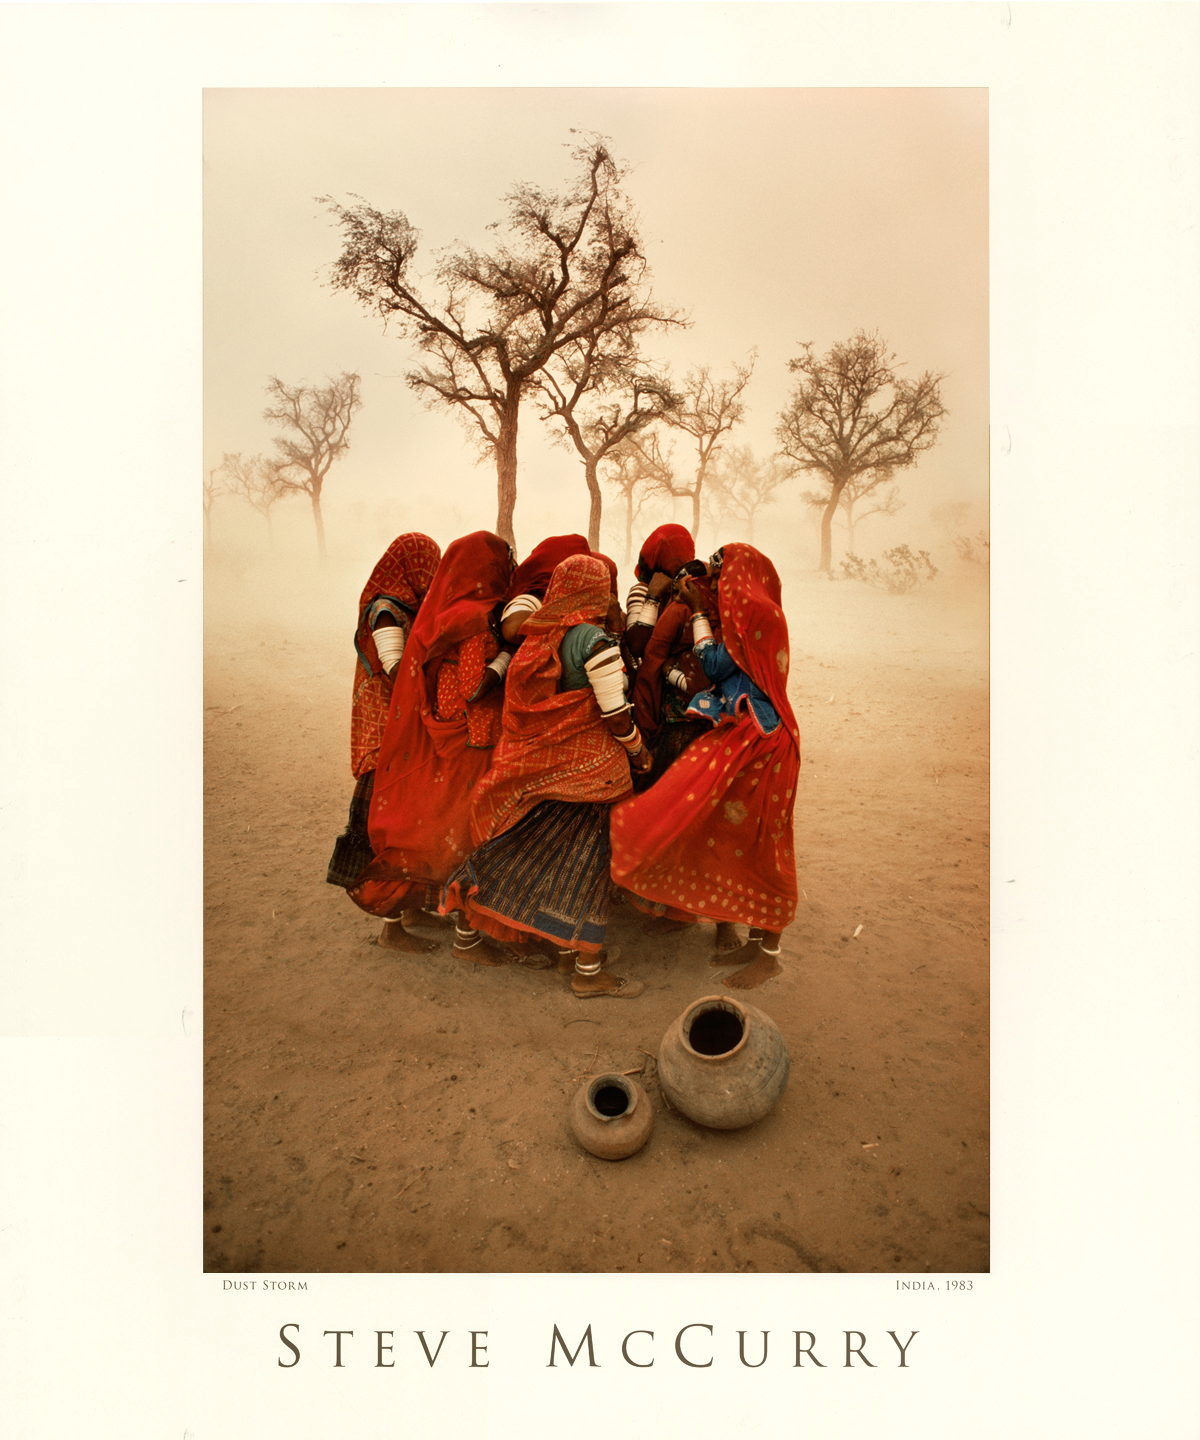 Dust storm, Rajasthan, India, 1983.